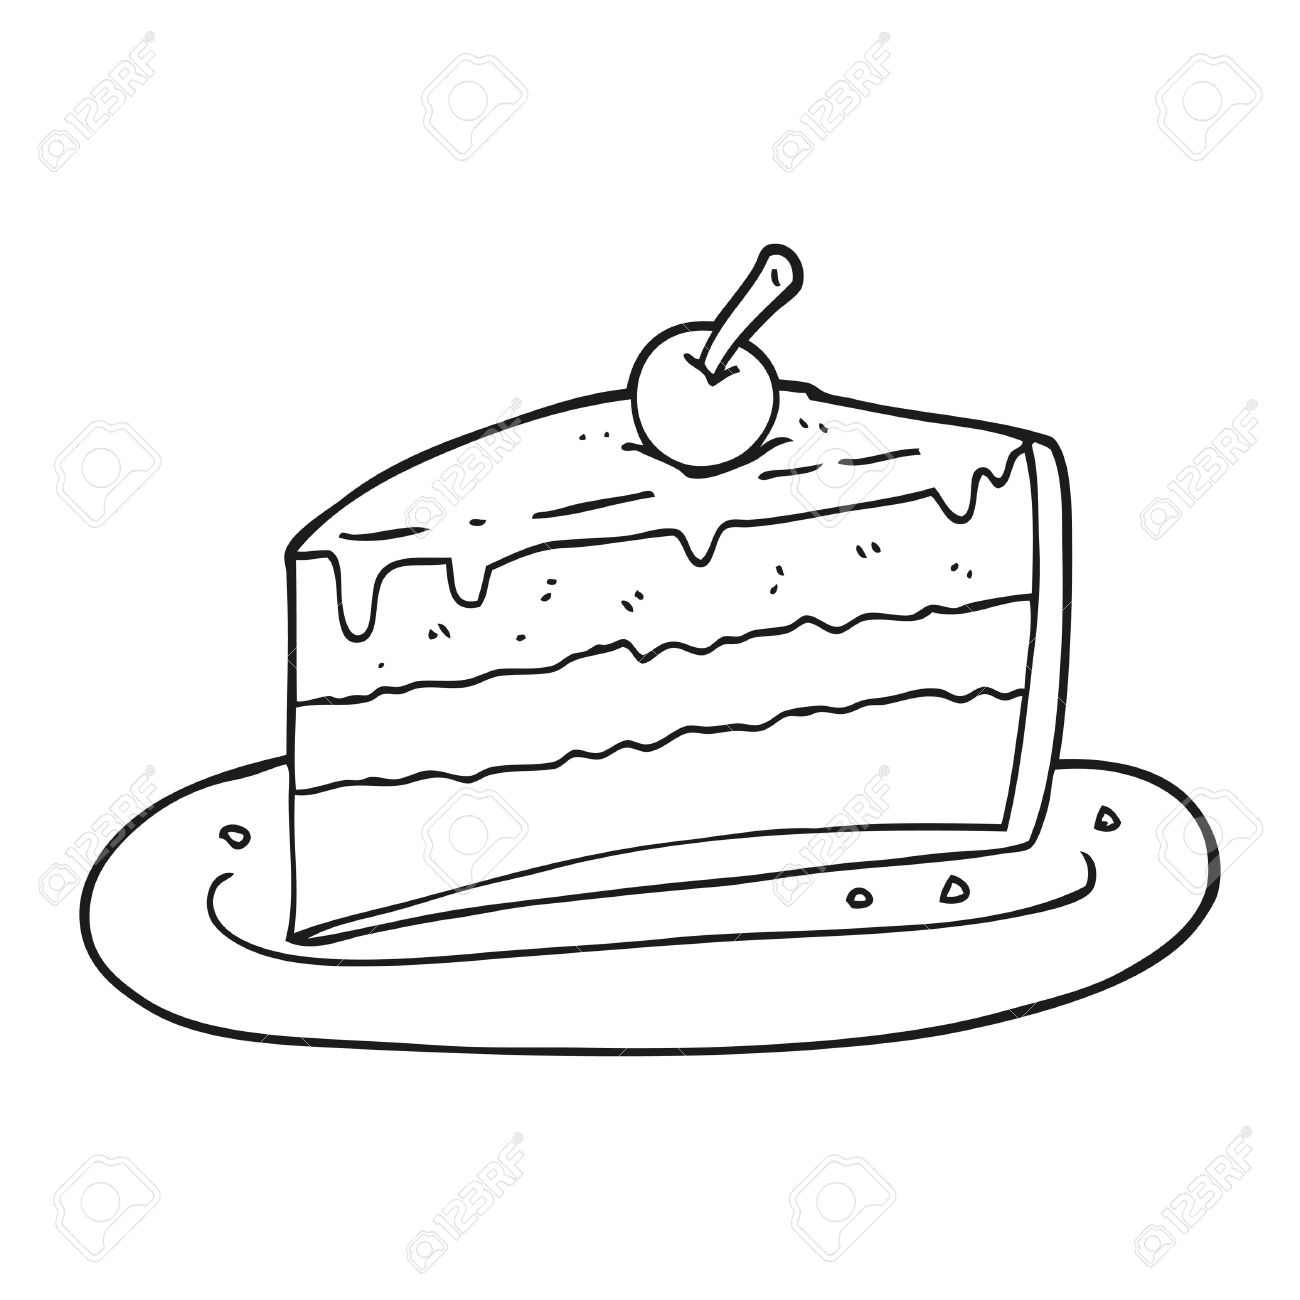 Freehand Drawn Black And White Cartoon Slice Of Cake Royalty Free ...